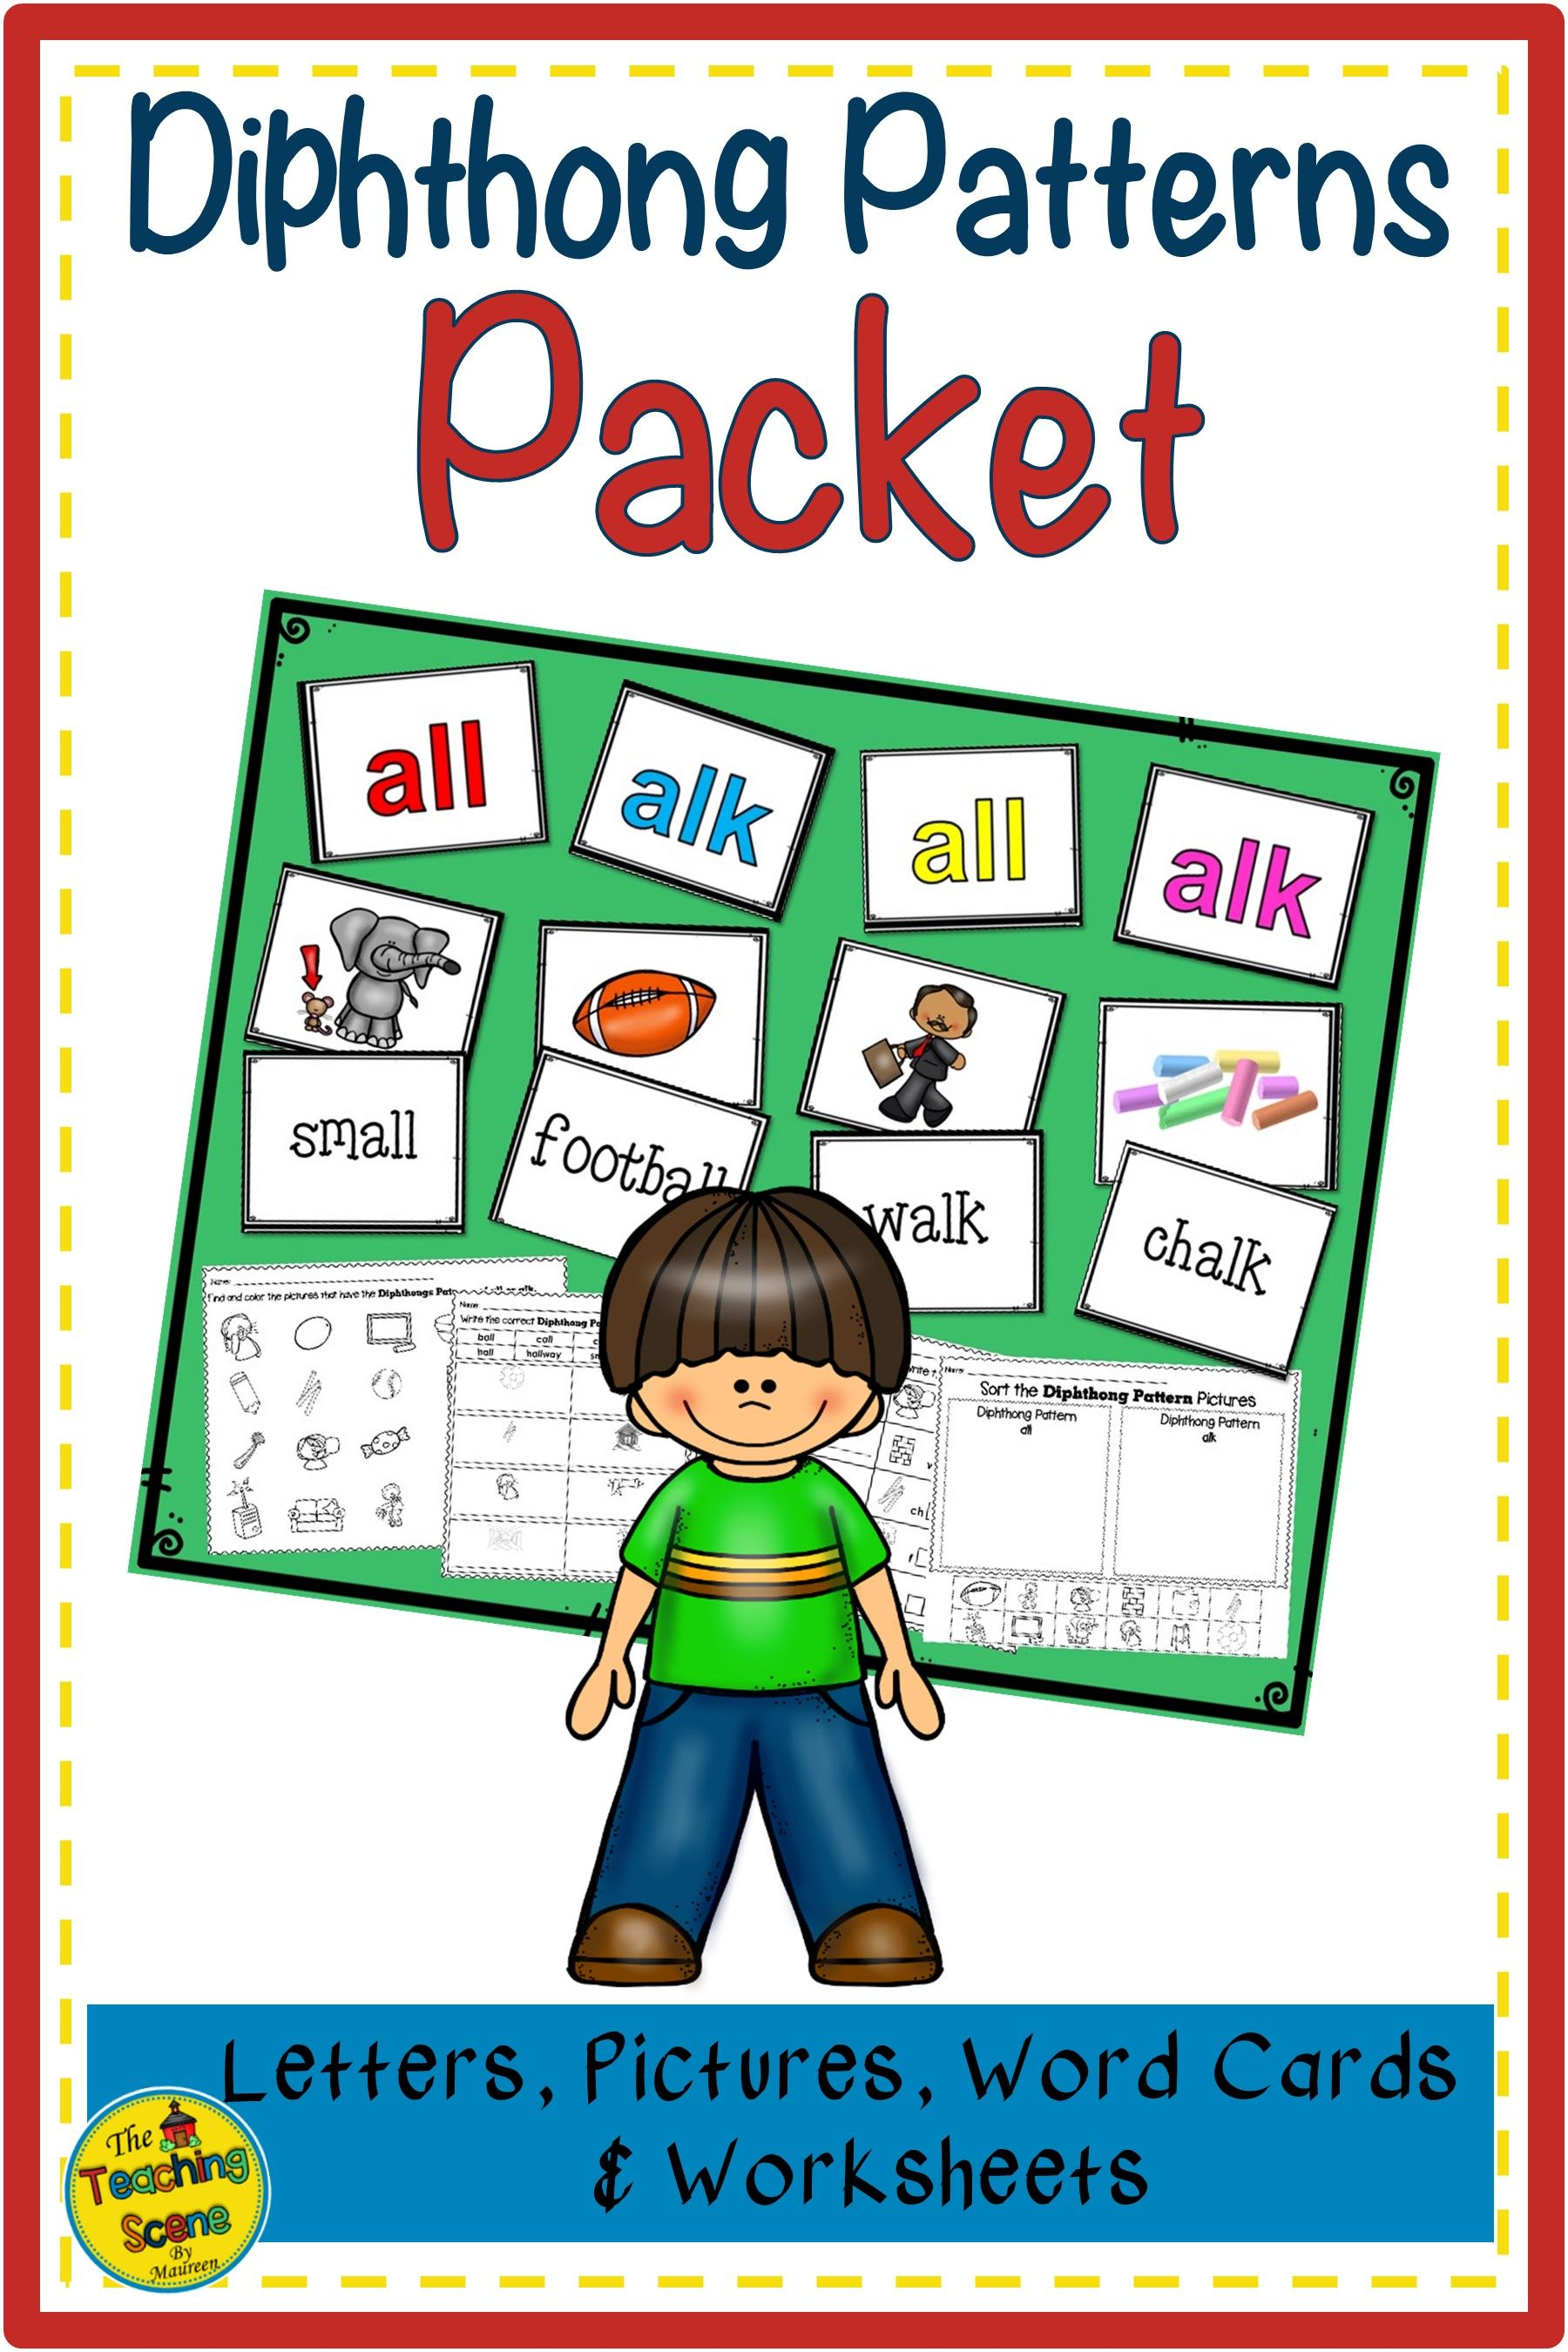 Diphthong Patterns All Amp Alk Packet Letters Pictures